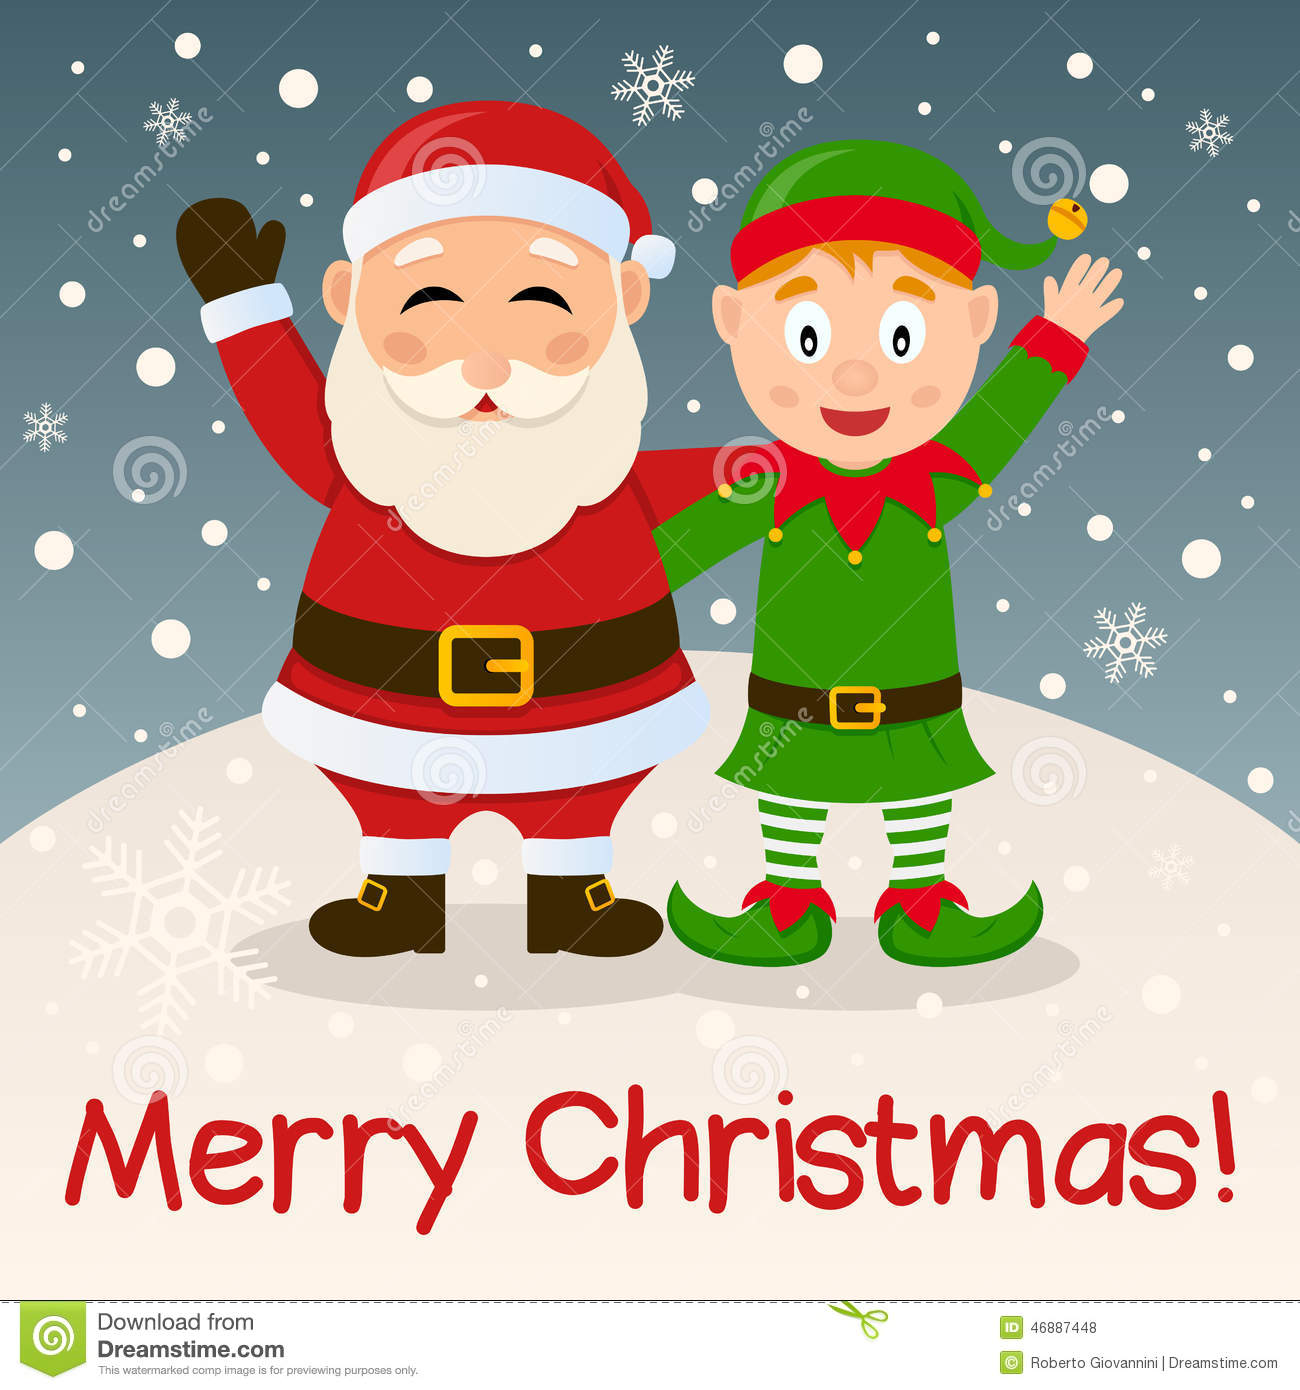 Santa Claus & Christmas Elf On The Snow Stock Vector - Image: 46887448